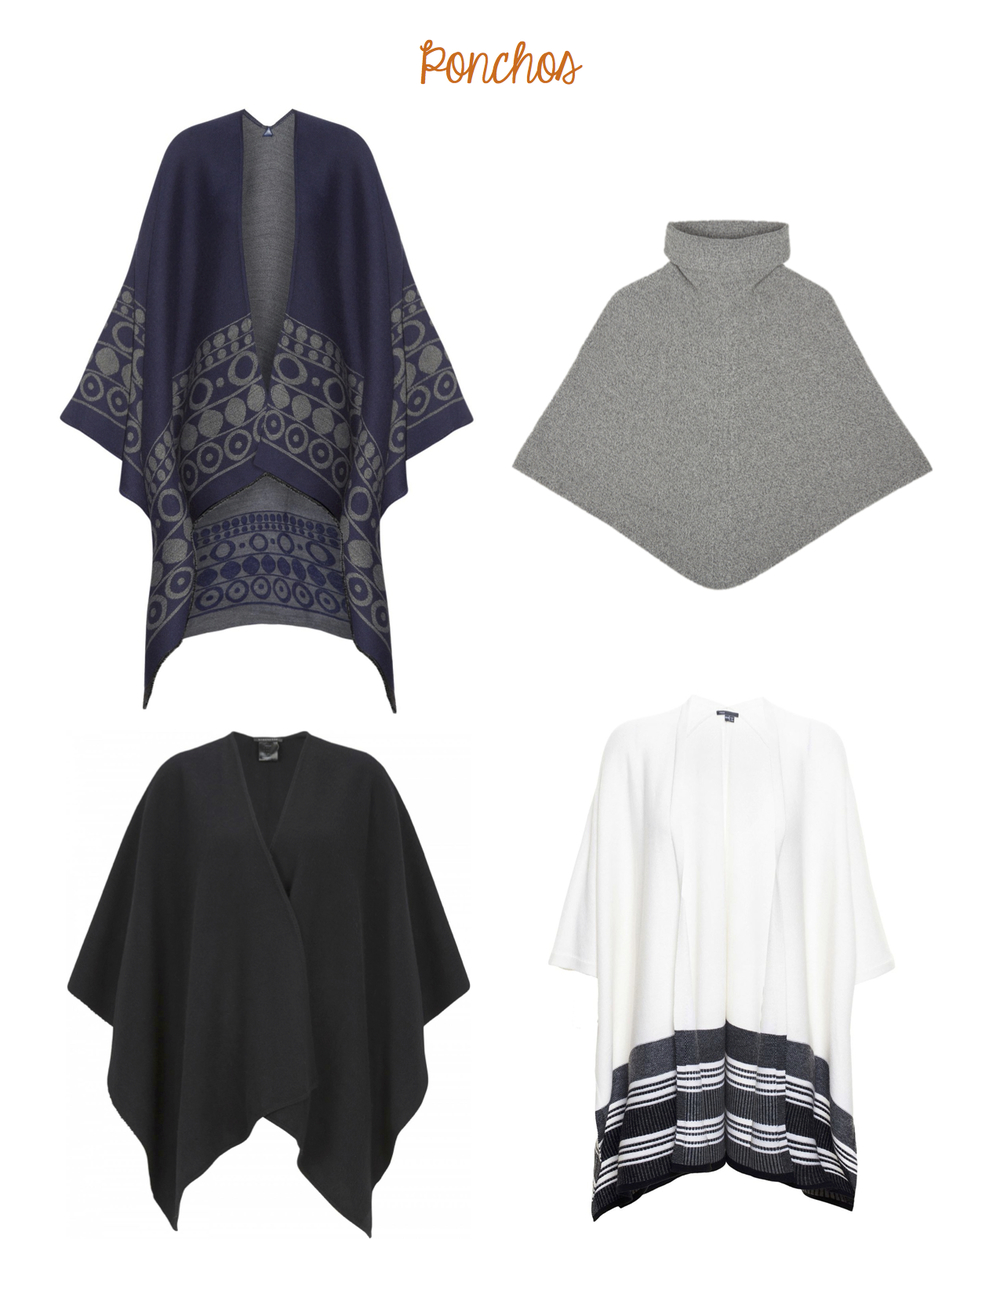 Clockwise from top left: Weekend Max Mara Sumatra Wrap and Bino Poncho, Vince Graphic Stripe Sweater Cape, Strenesse Poncho